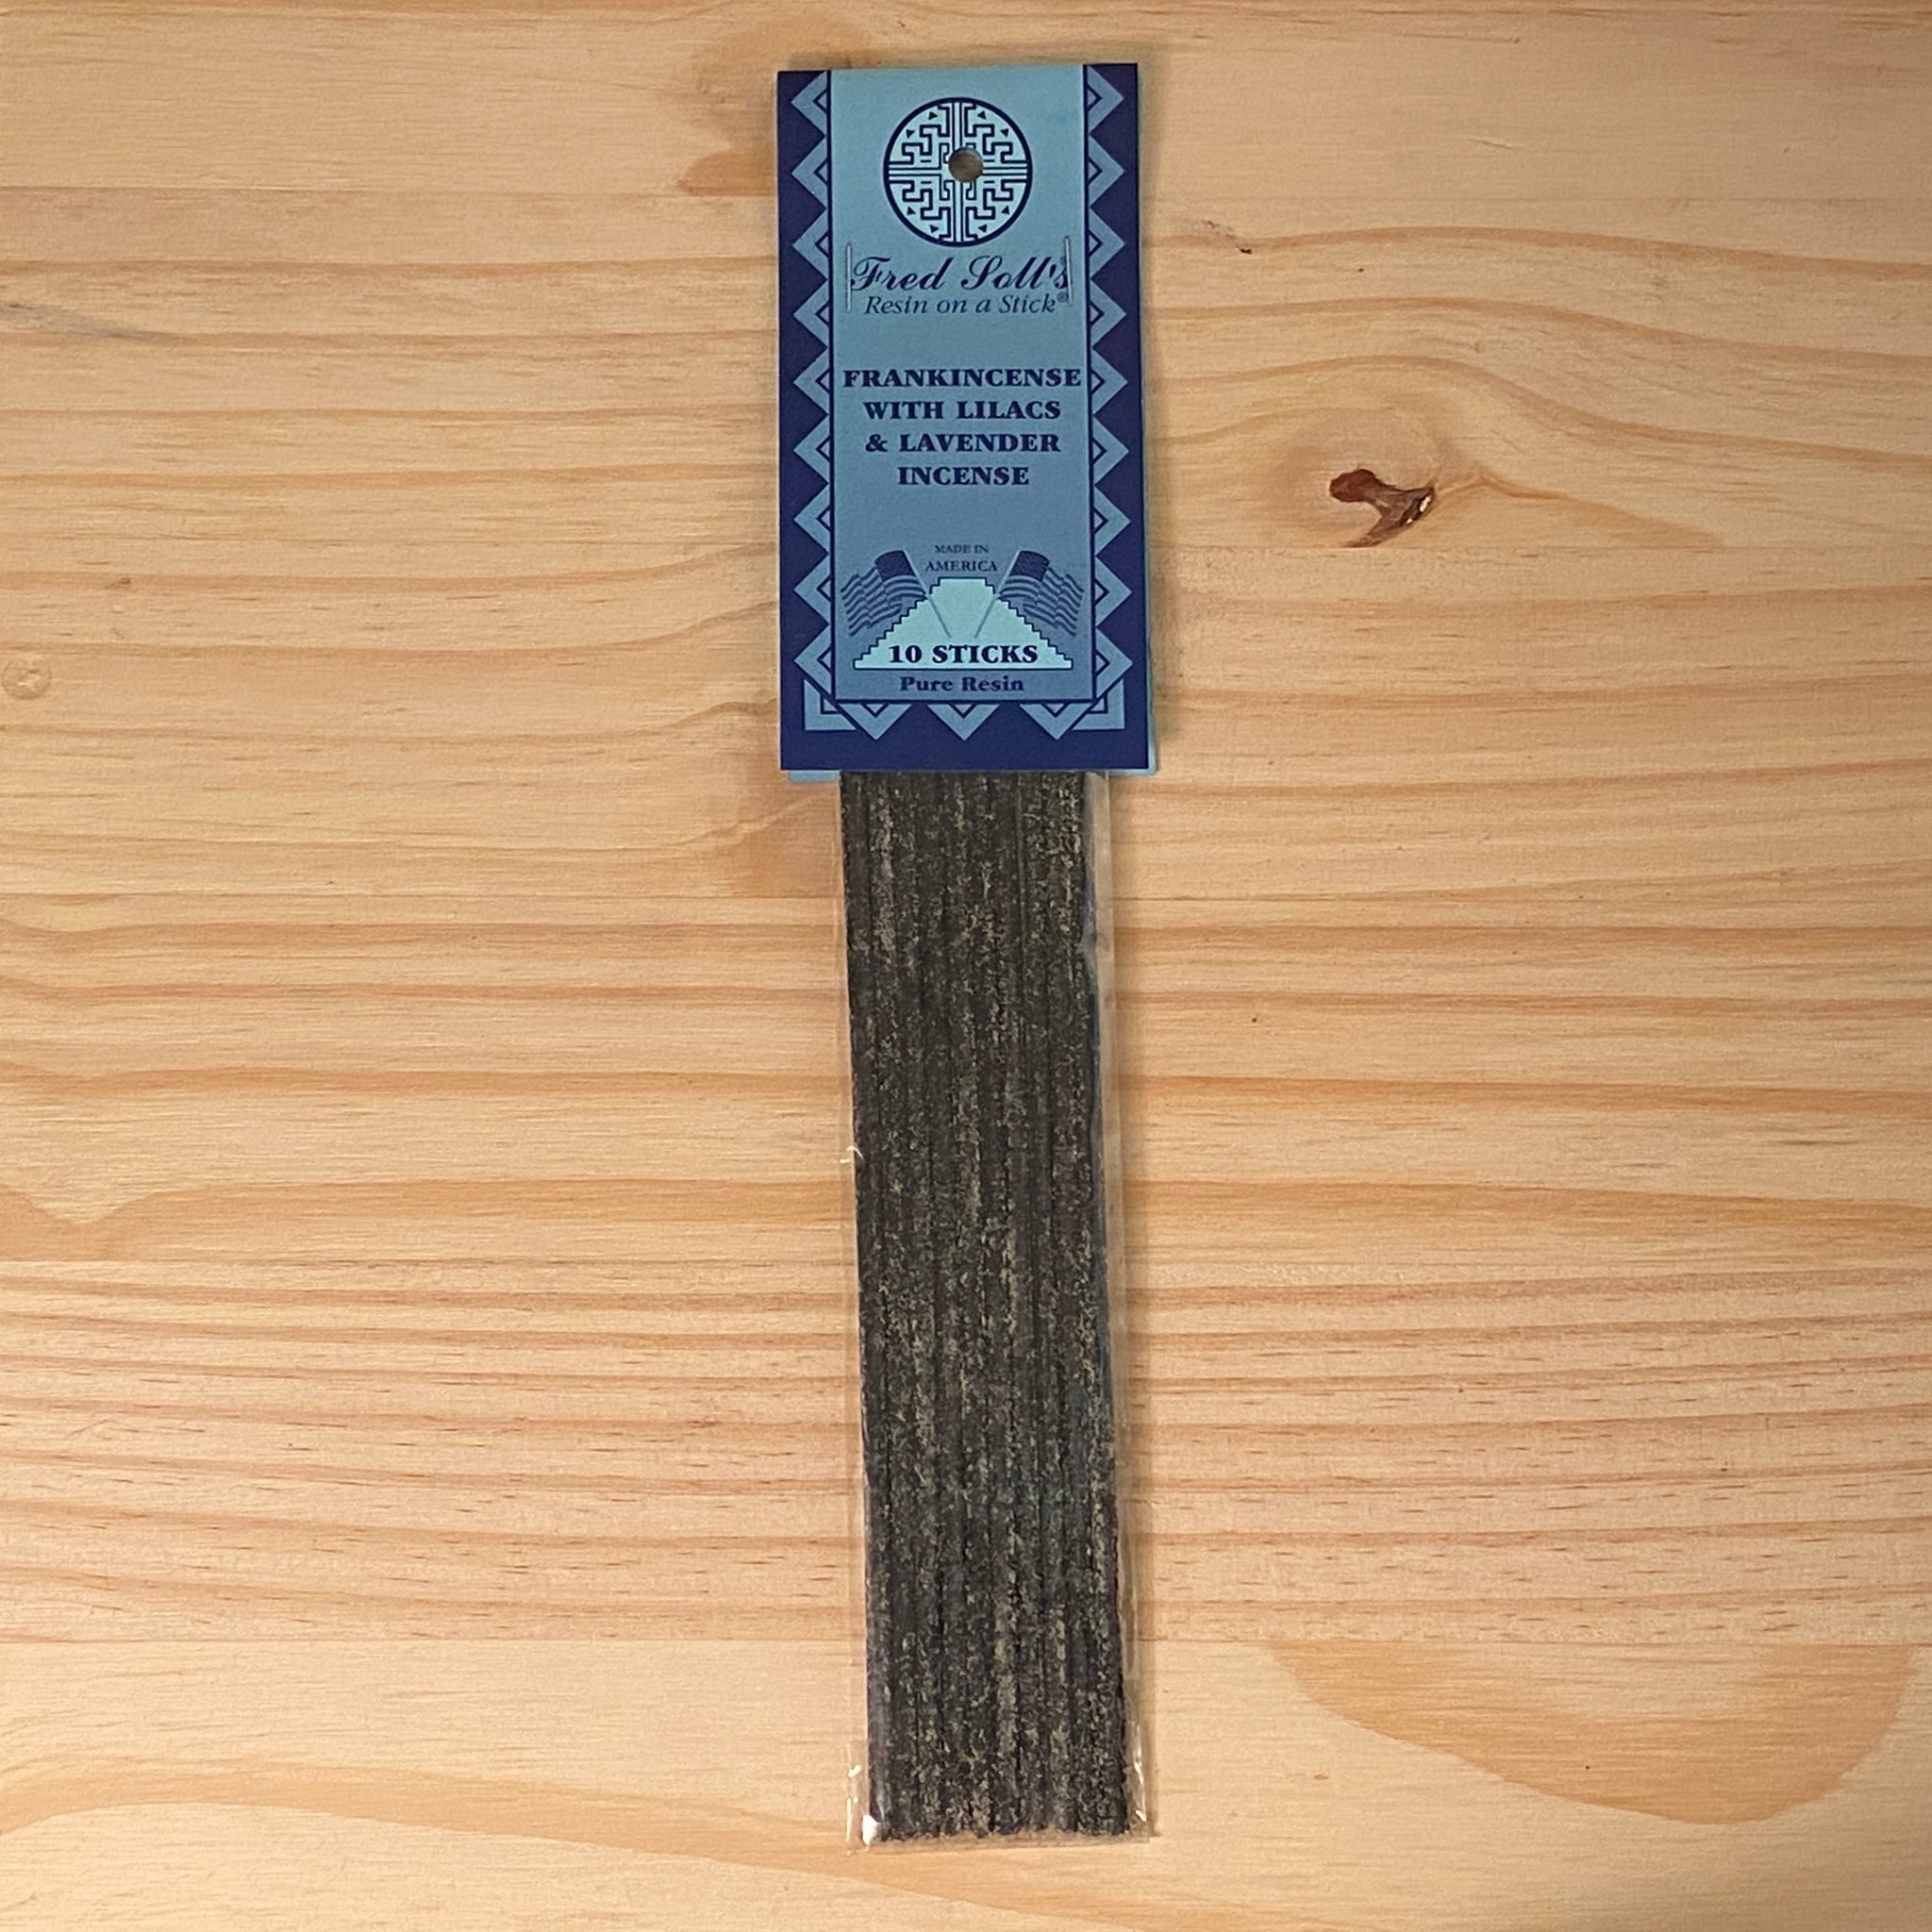 Frankincense with Lilacs and Lavender Incense (10 Sticks)